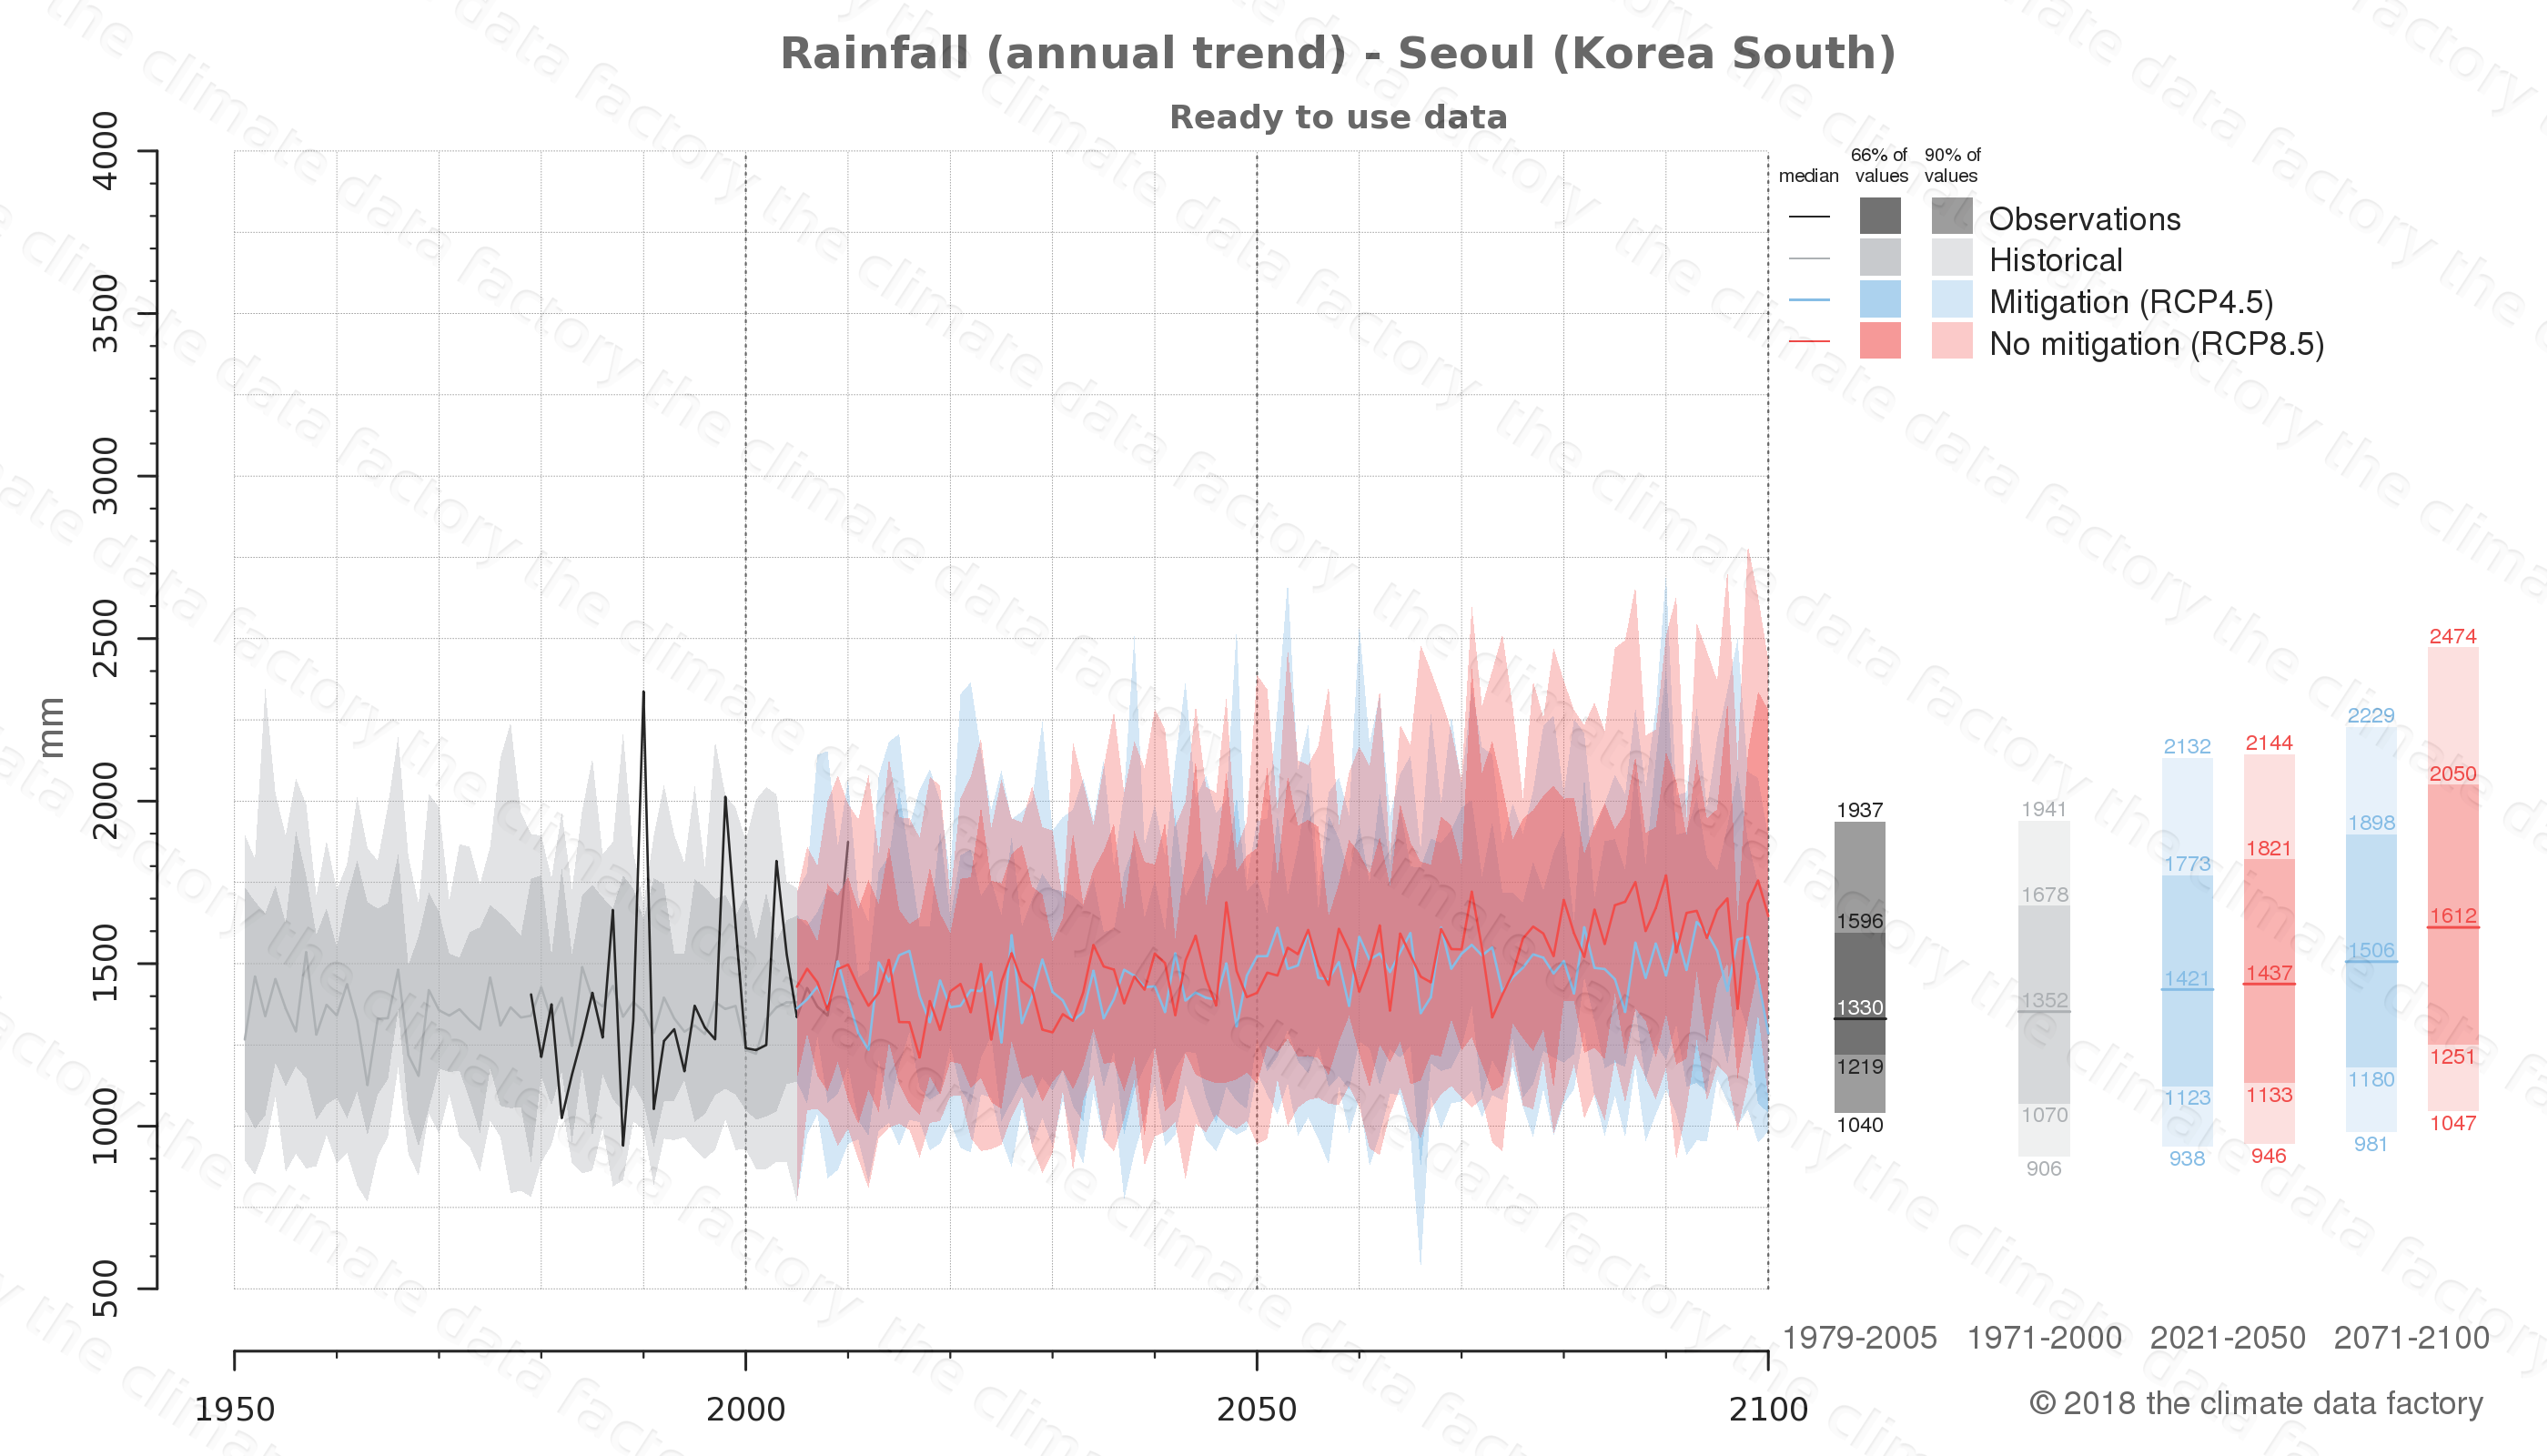 climate change data policy adaptation climate graph city data rainfall seoul south korea